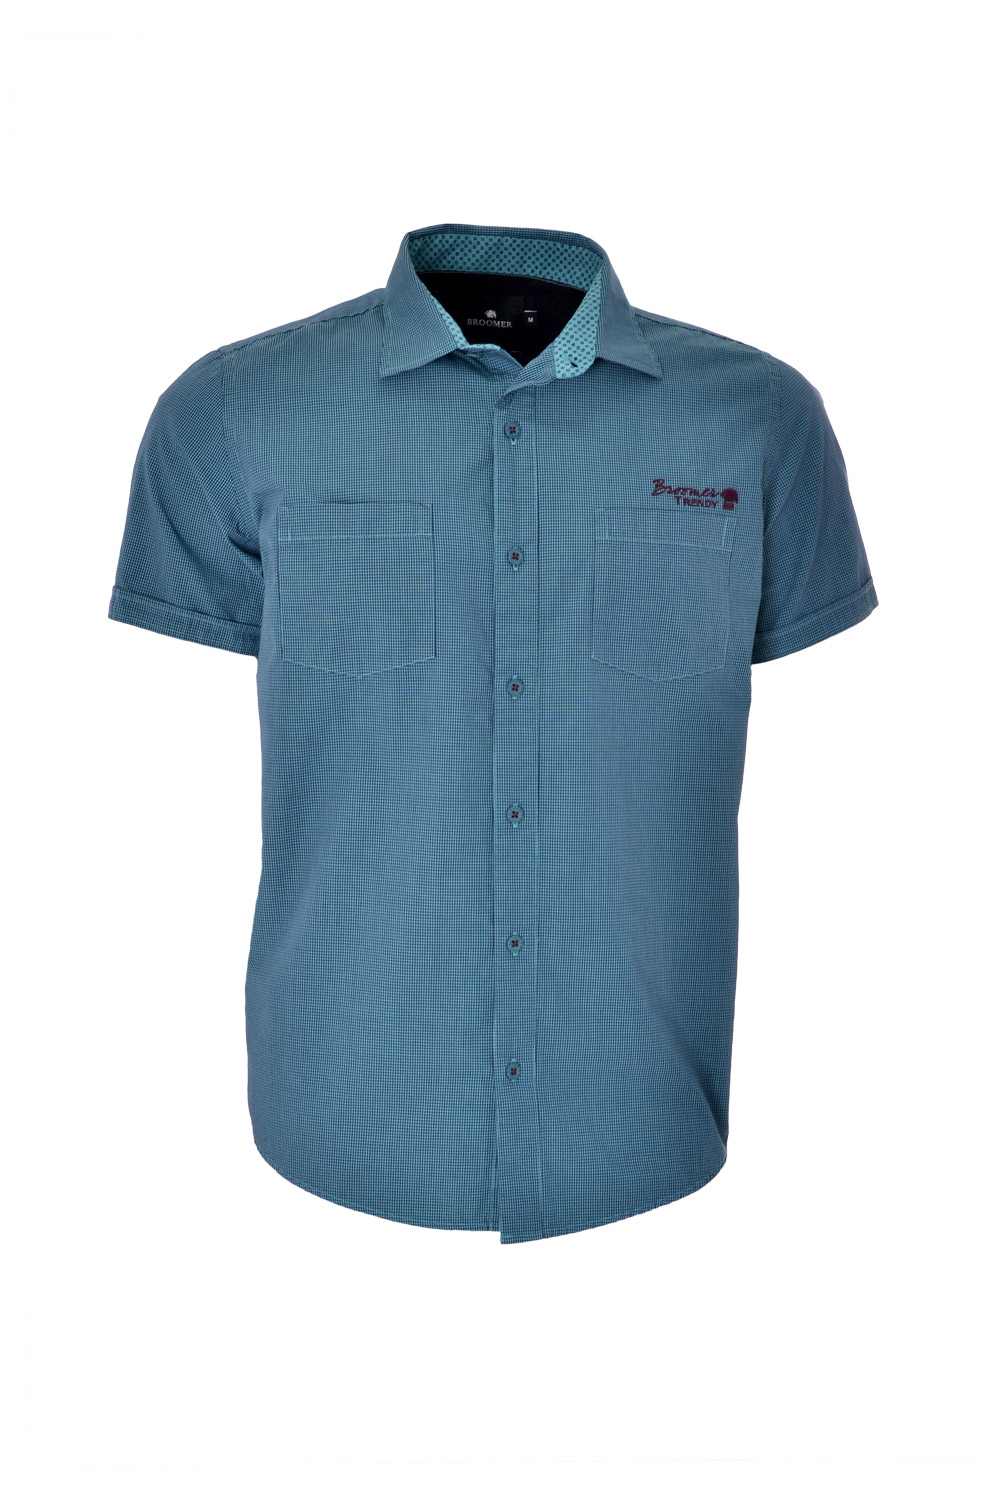 CAMISA MC BLUES SLIM ALGODAO TRENDY MICRO-XADREZ VERDE PETROLEO